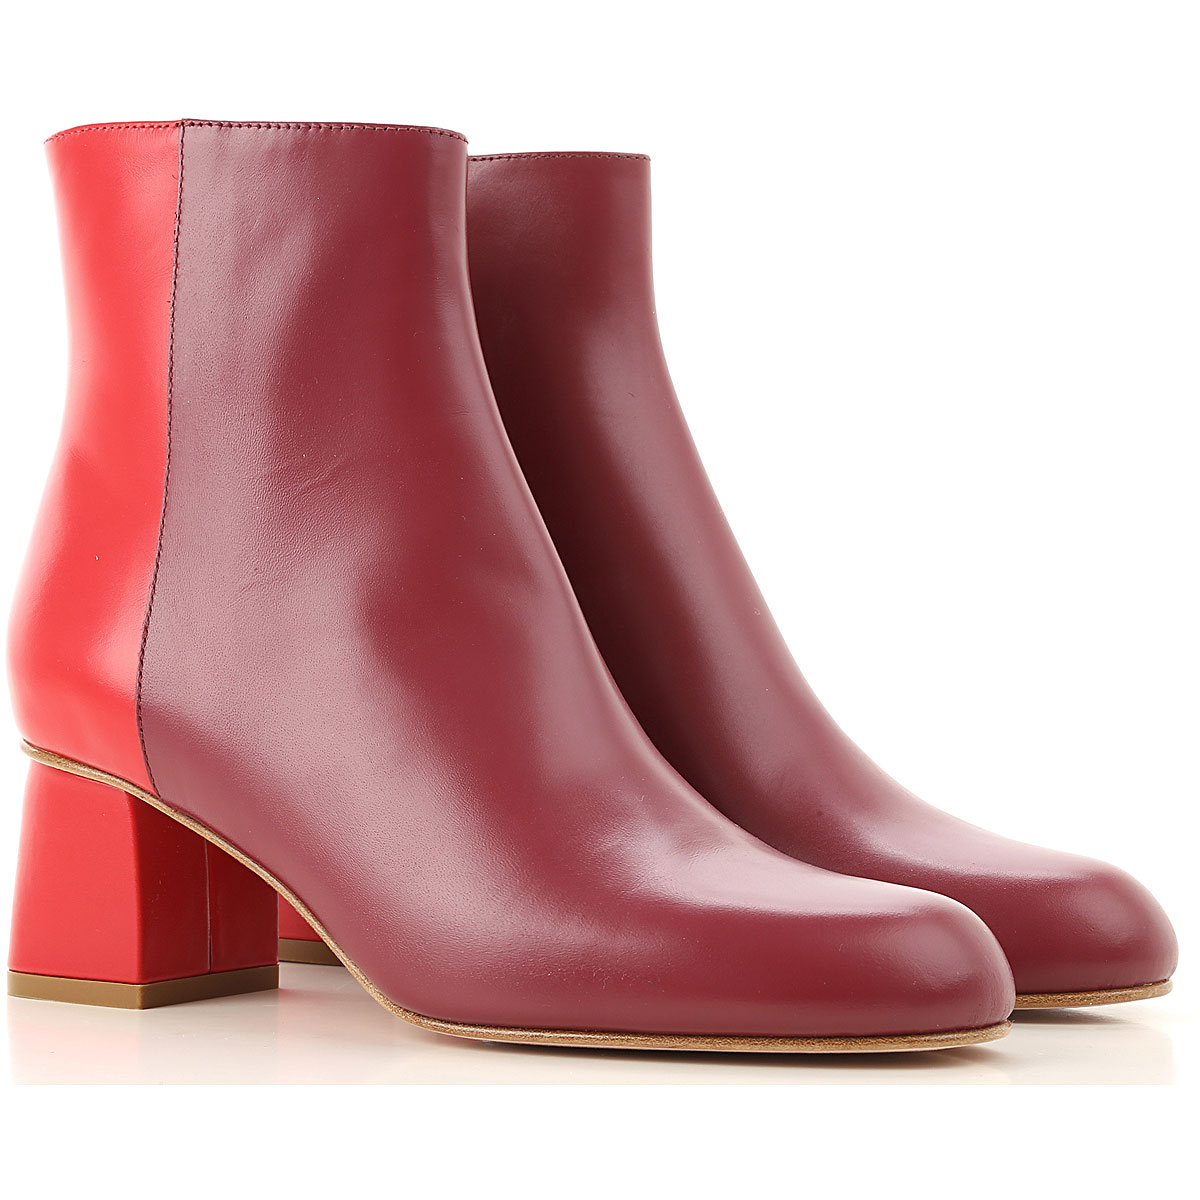 RED Valentino Boots for Women, Booties On Sale, Dark Red, Leather, 2019, 10 7 8 8.5 9